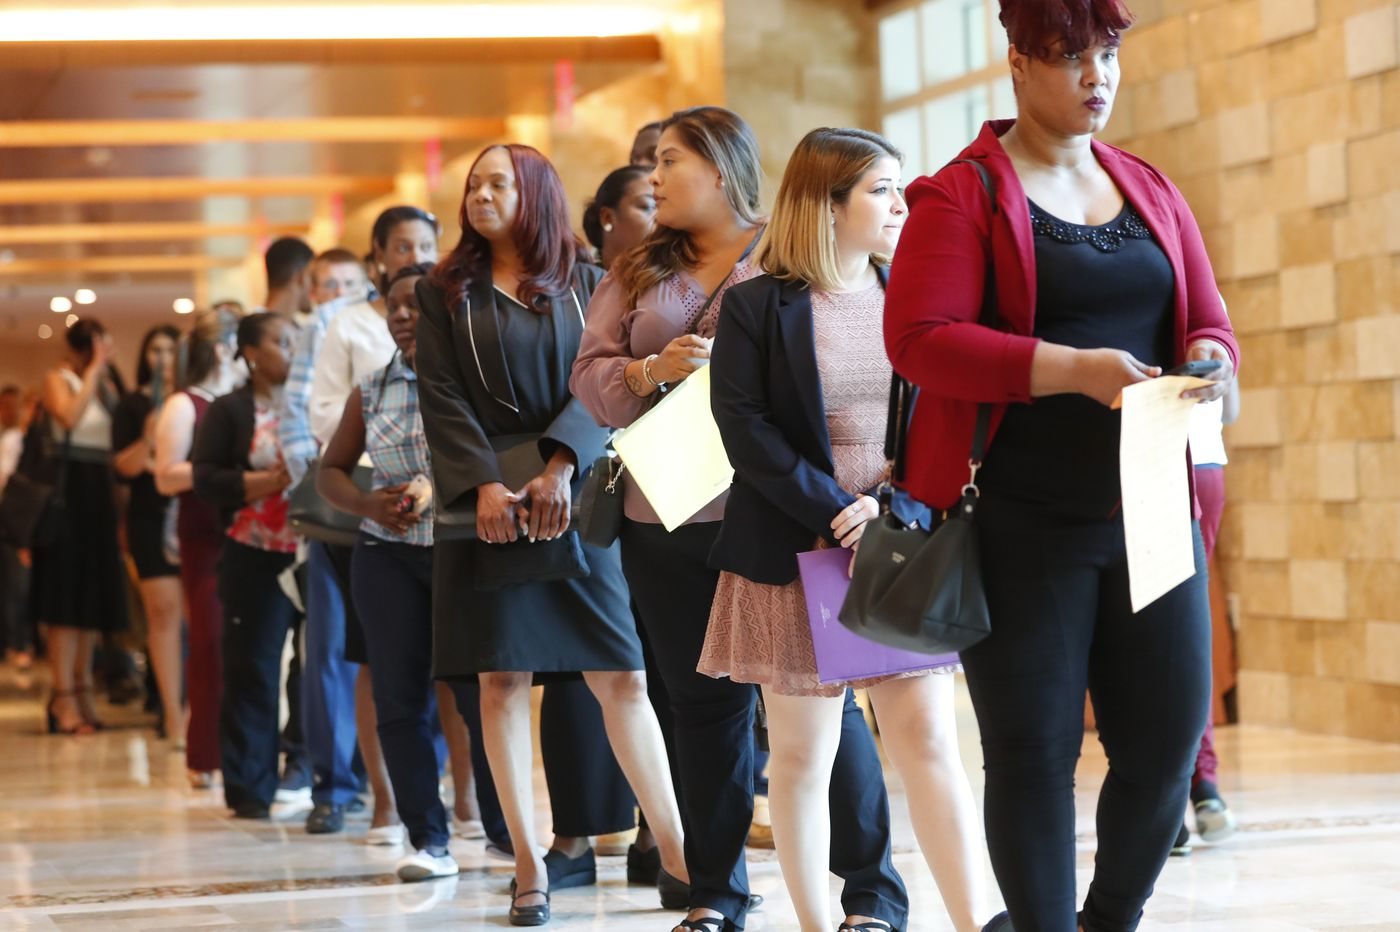 U.S. added a robust 224,000 jobs in June after weak May gain